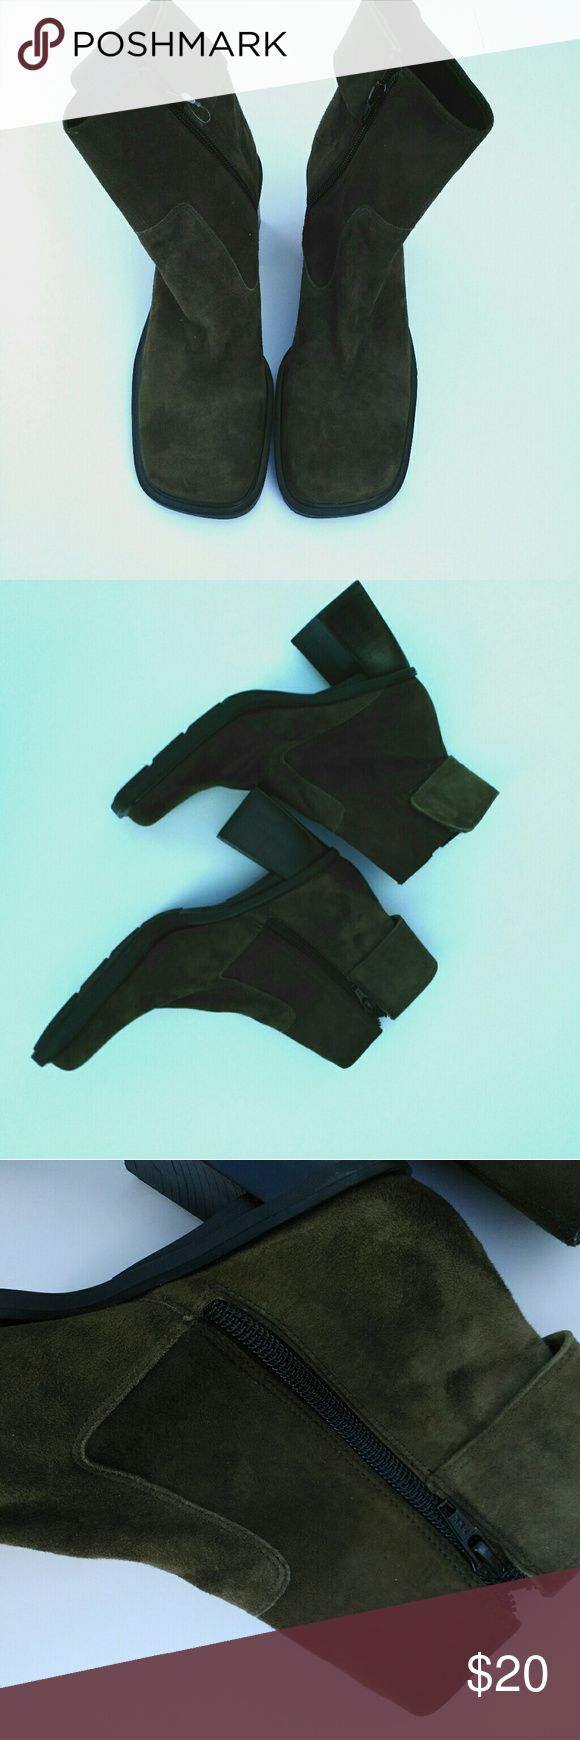 Nine West women's booties Great condition. Dark olive green Nine West booties, inner zipper closure and velcro closure on the outside. Nine West Shoes Ankle Boots & Booties